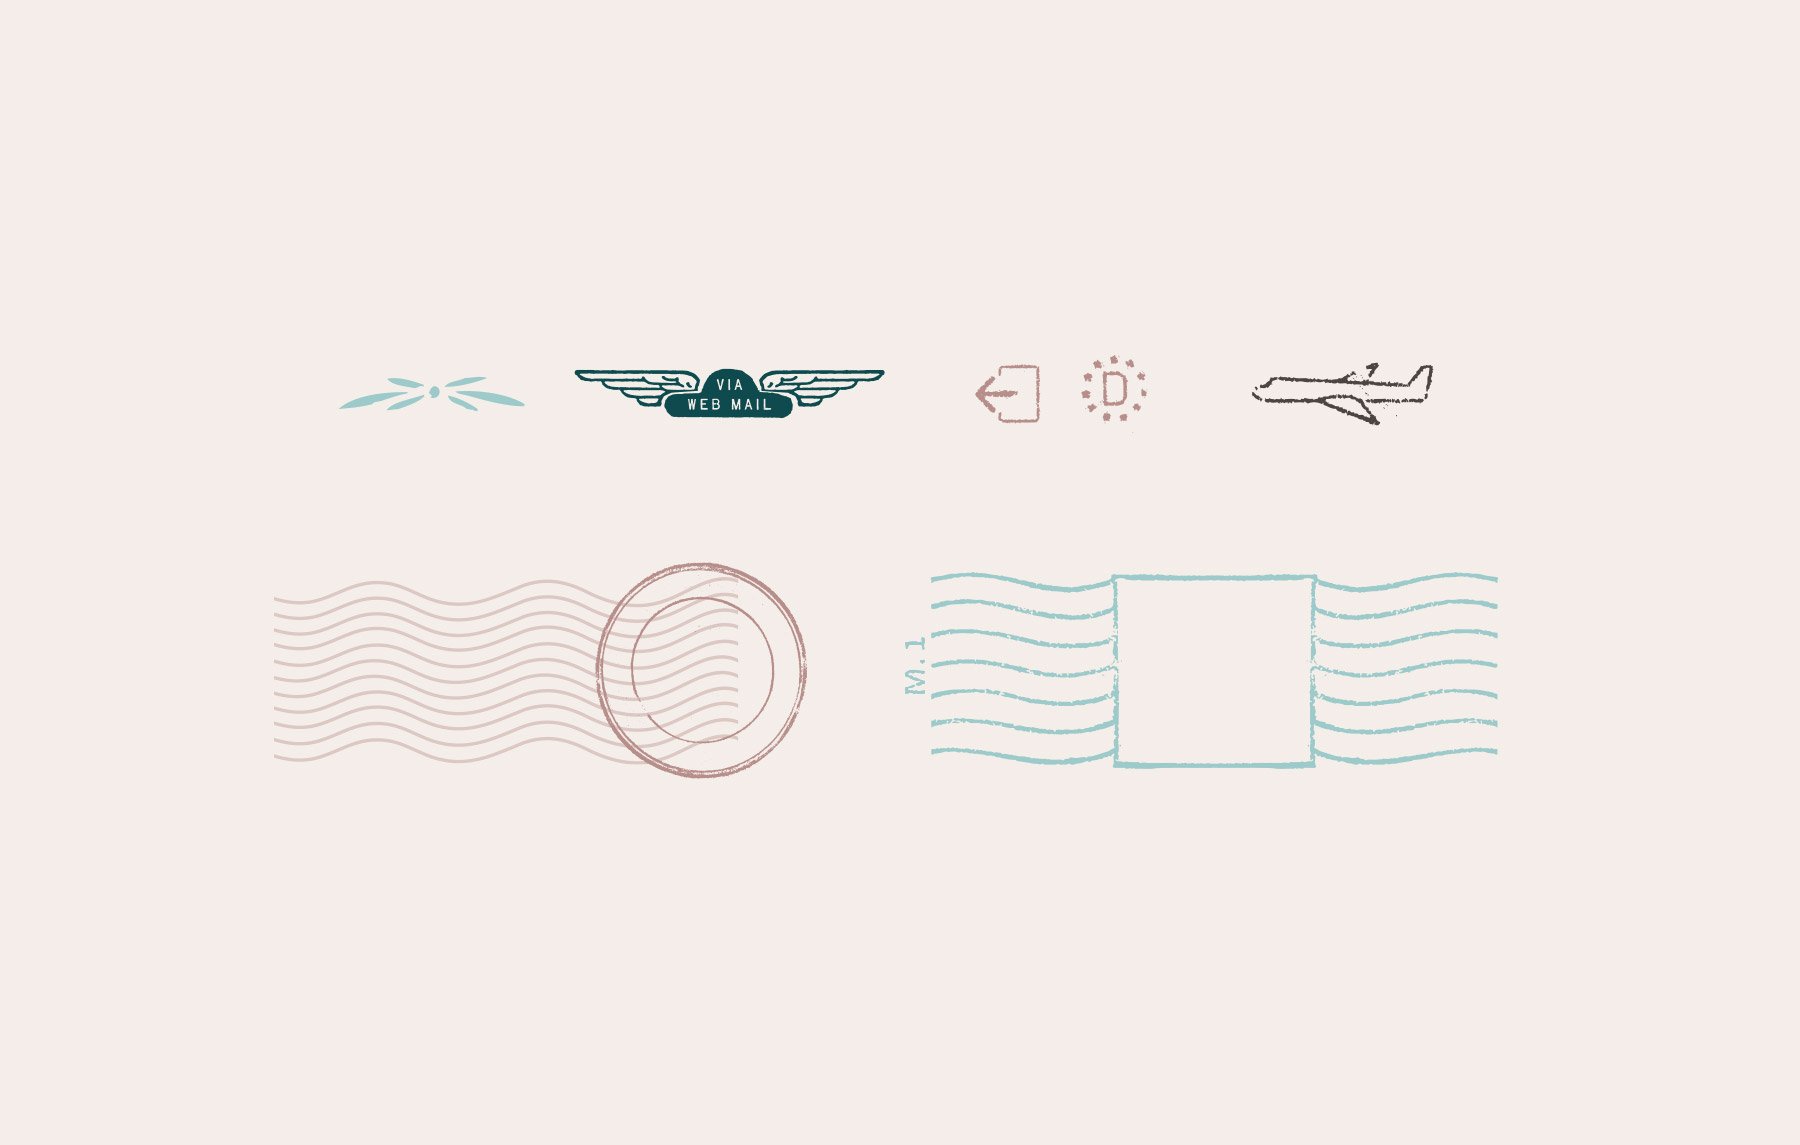 Rustic travel icons for a website